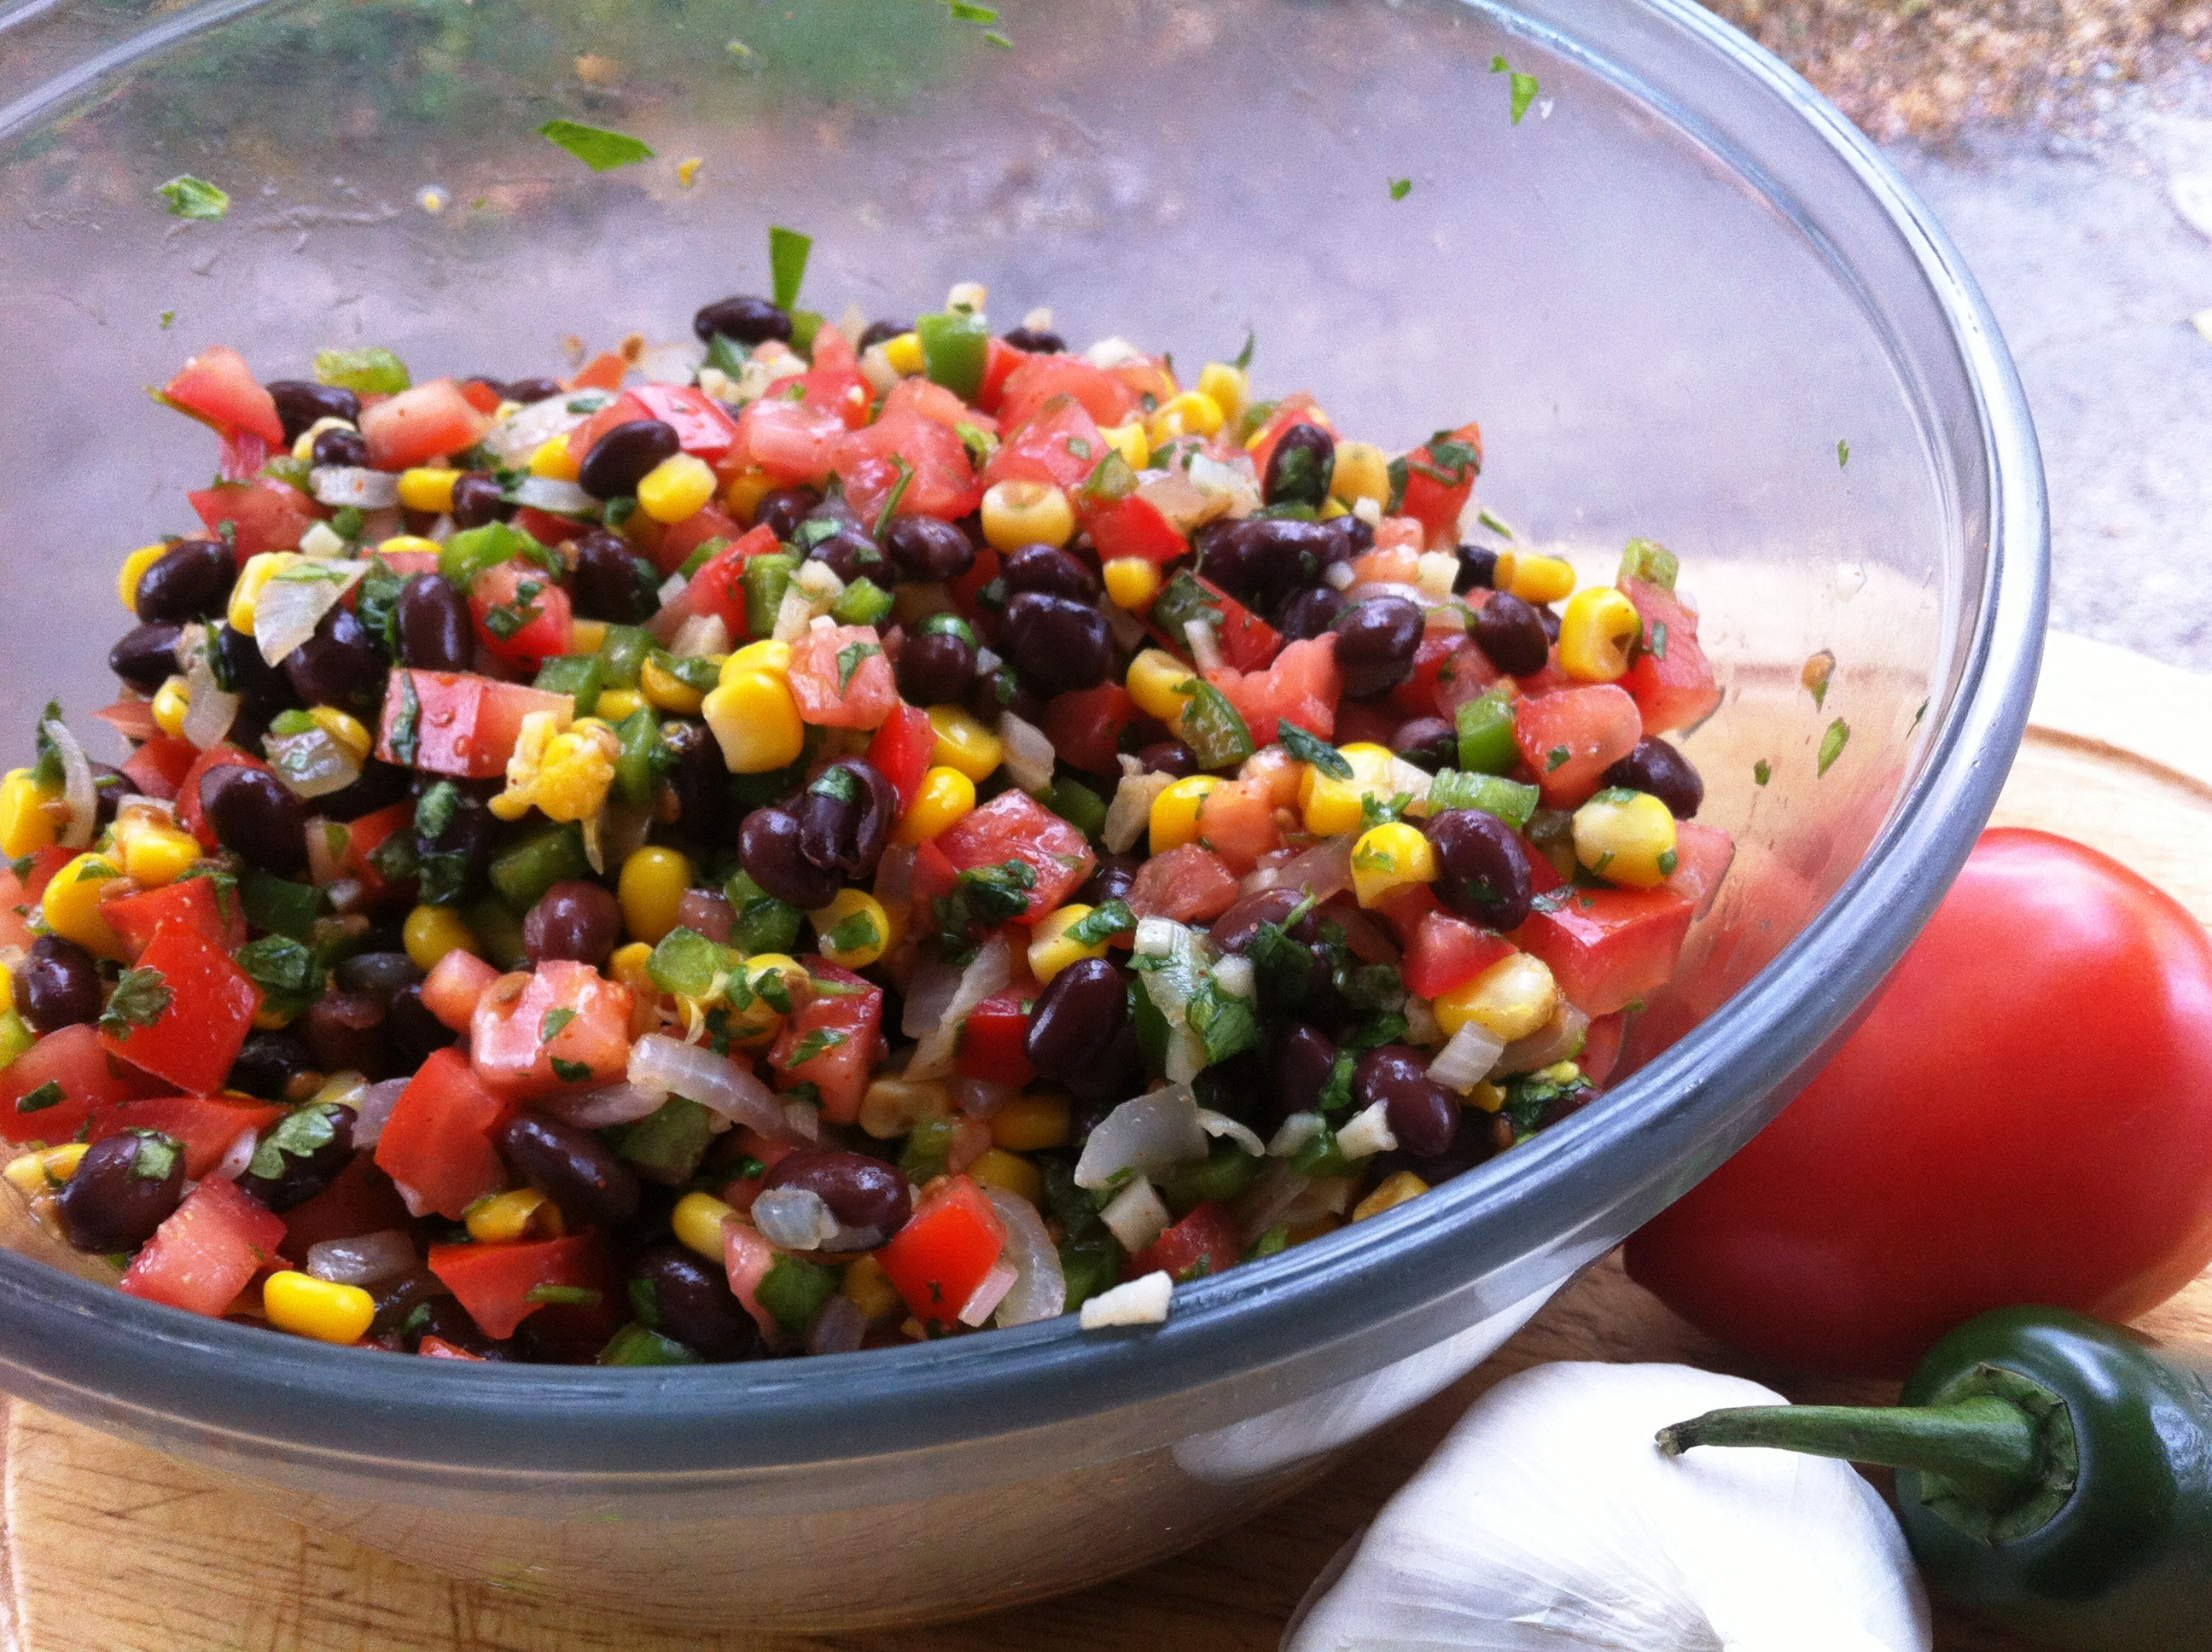 corn chips for a quick snack, our Corn, Tomato, and Black Bean Salsa ...